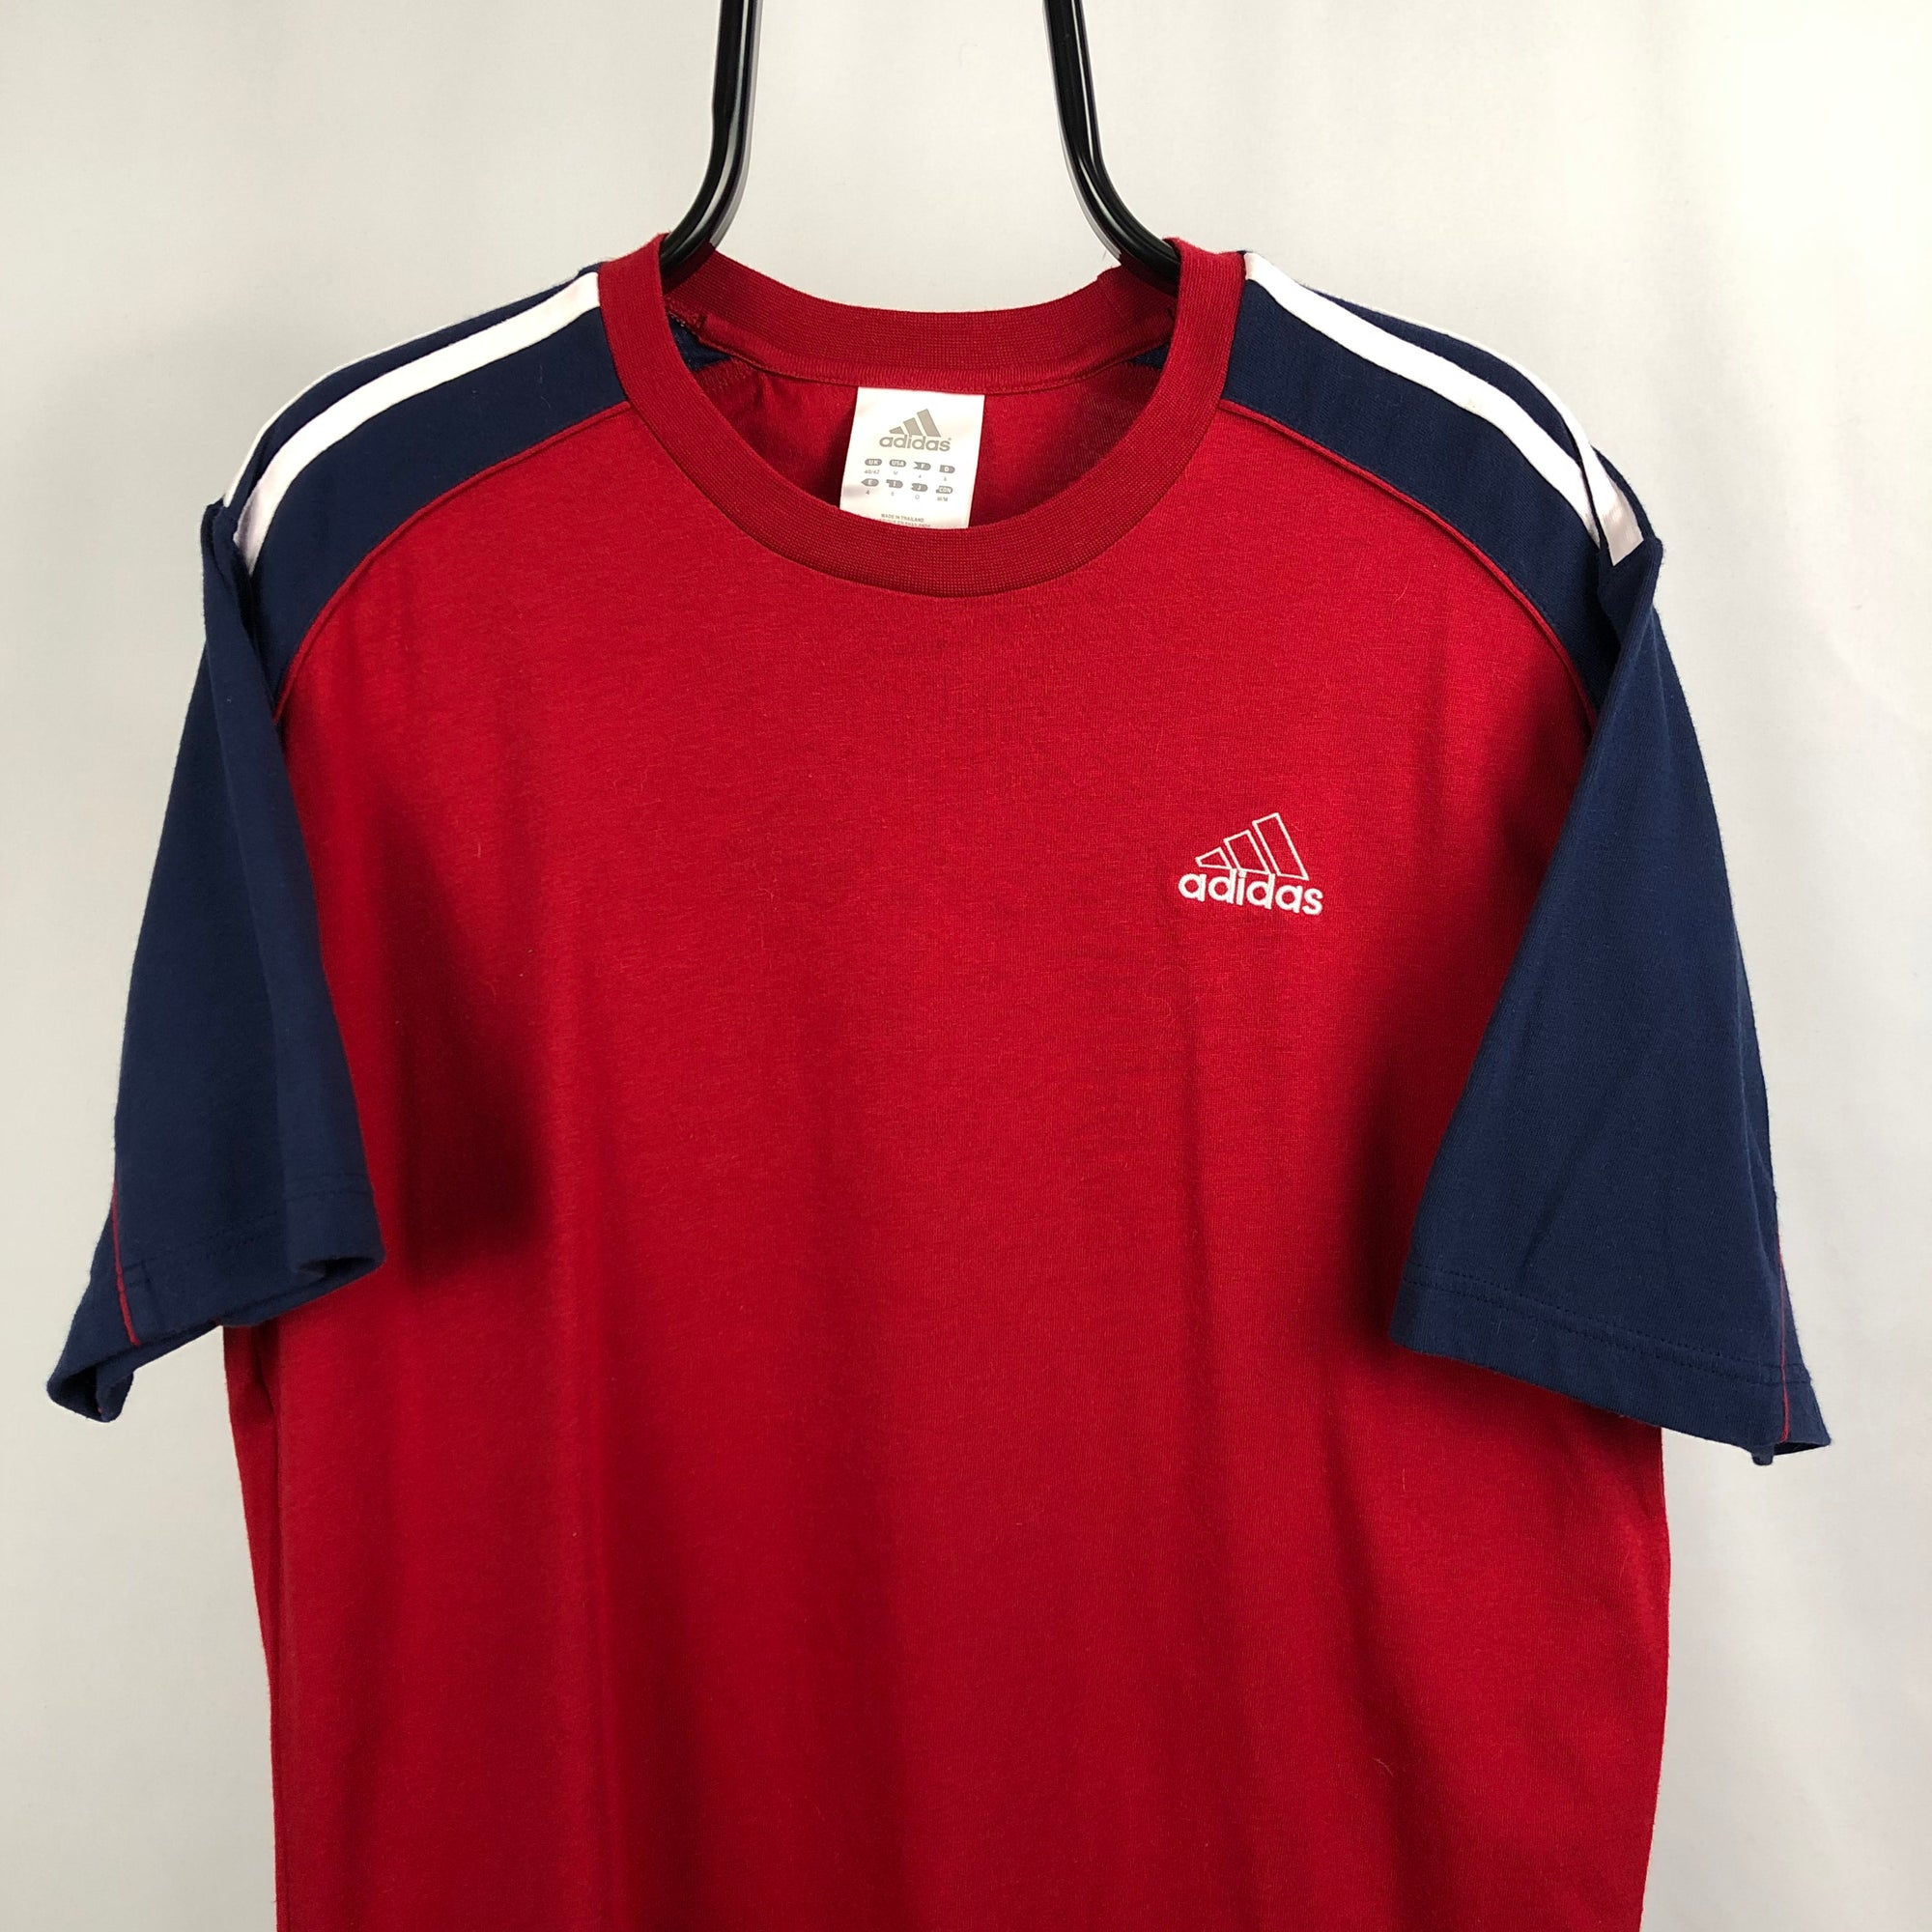 Vintage Adidas Embroidered Small Logo Tee in Red/Navy - Men's Large/Women's XL